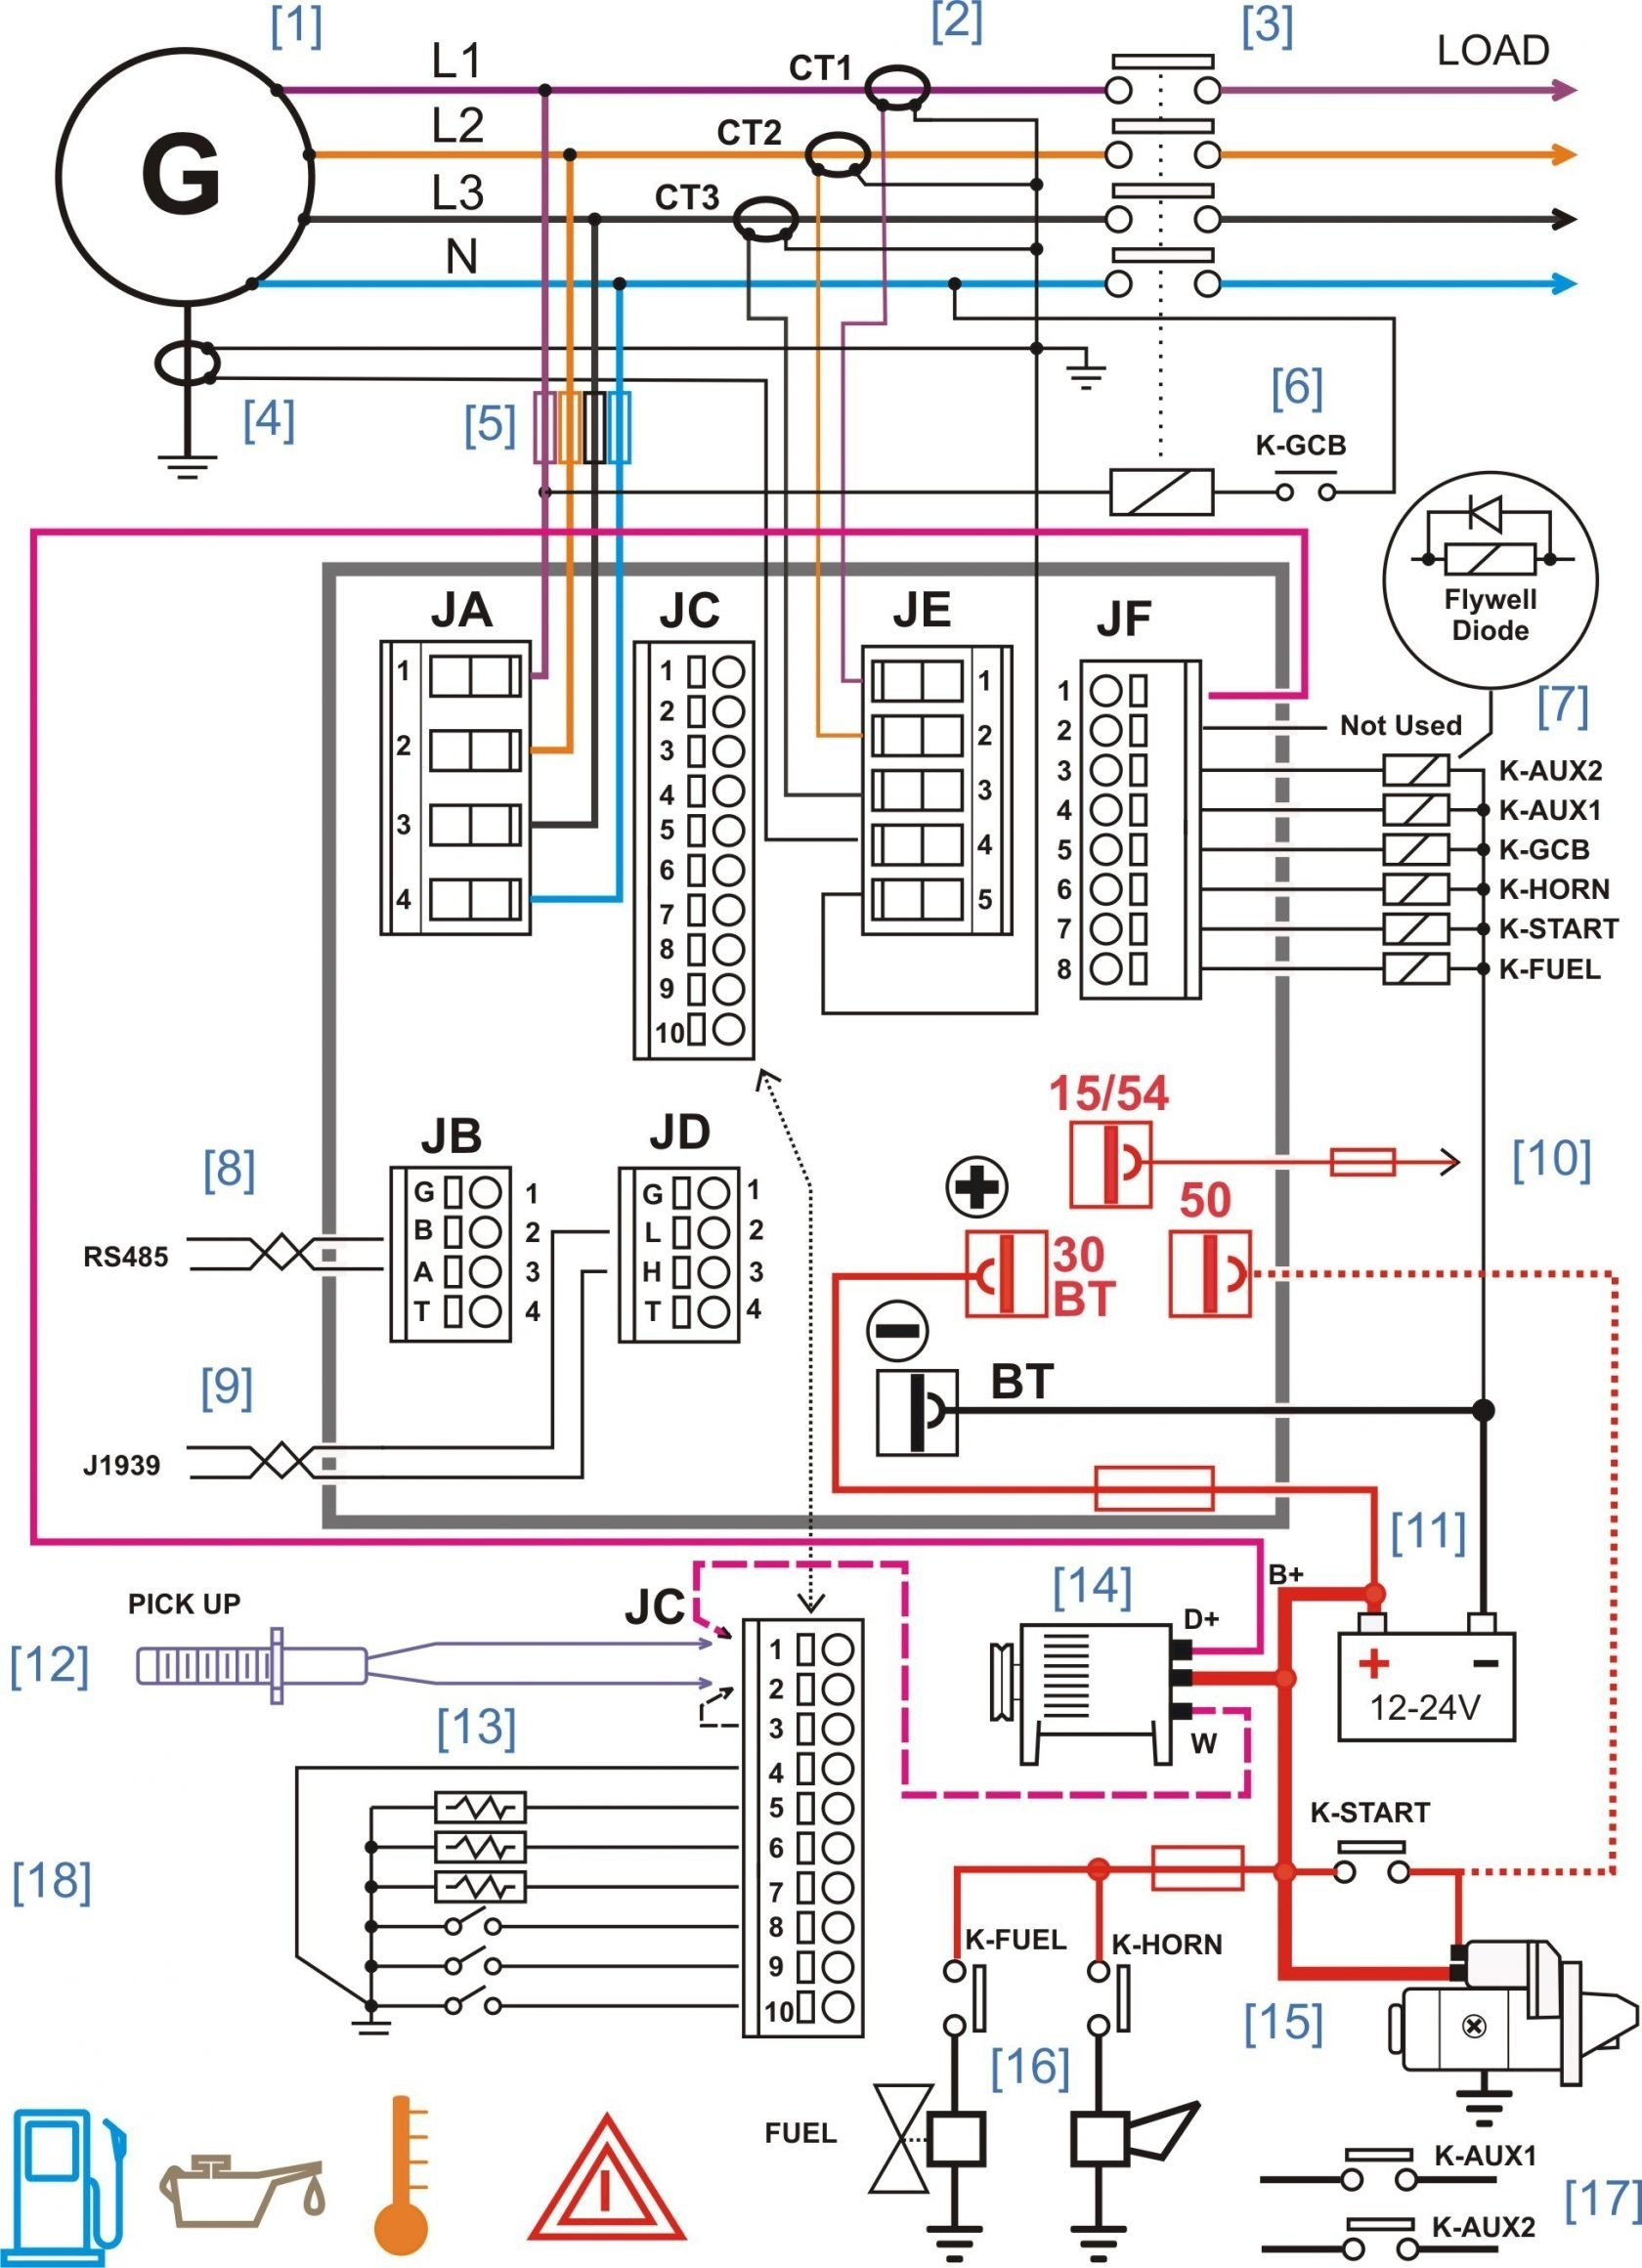 solar wiring diagram Download-Related Post 14-f